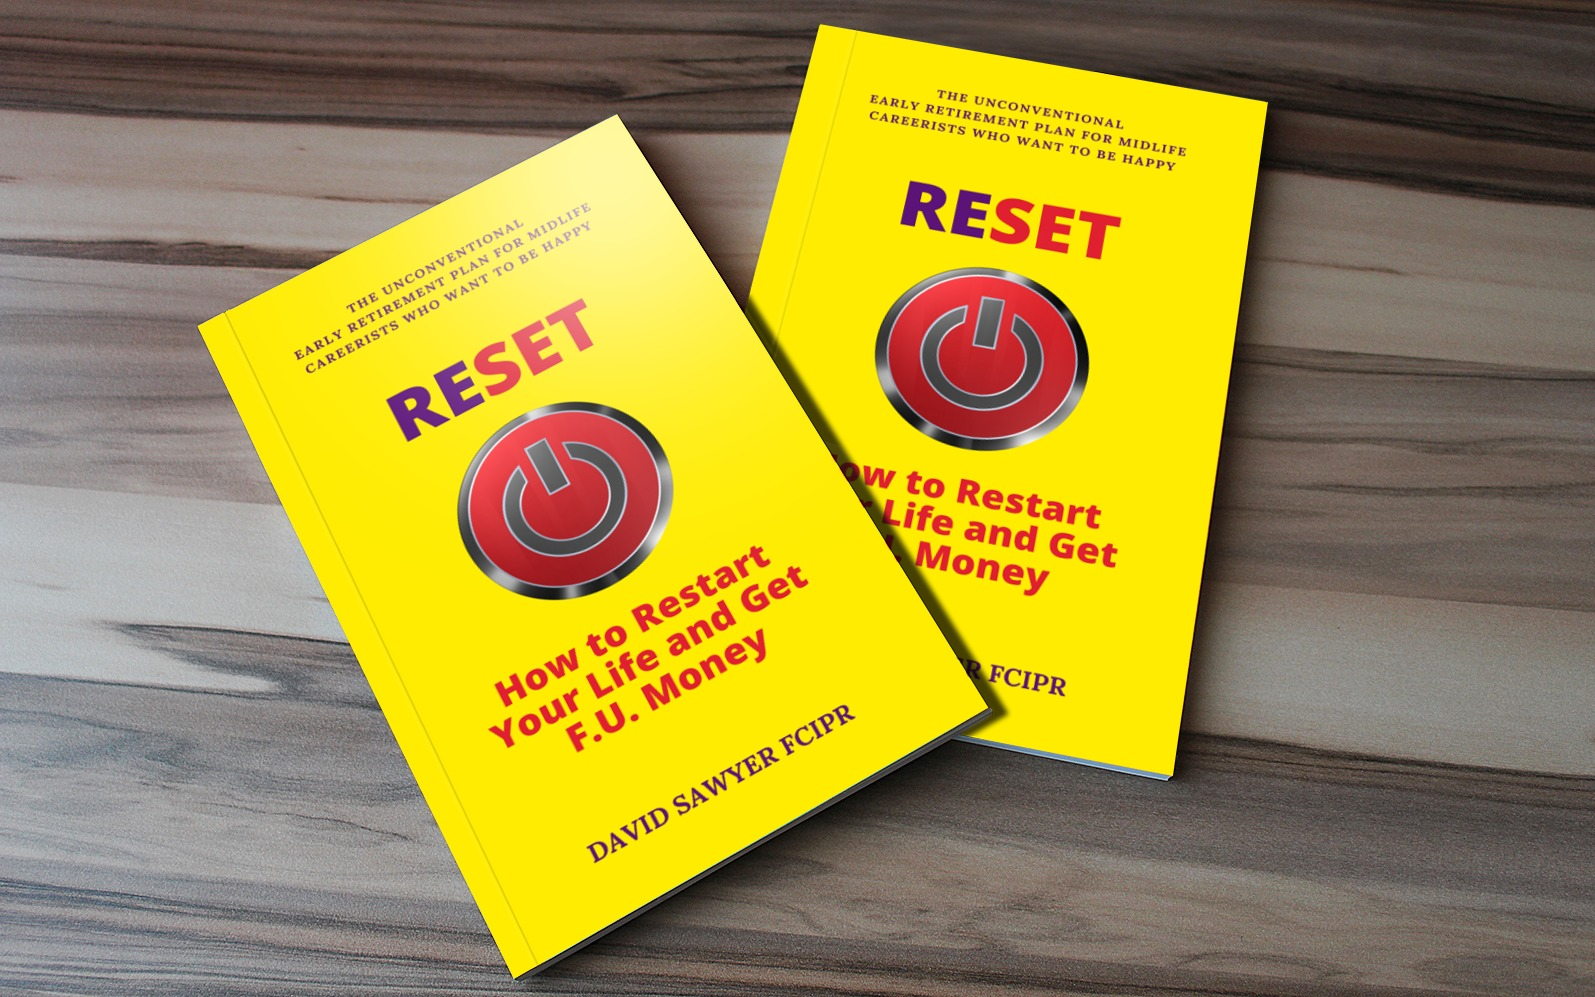 RESET paperback self-help book david sawyer zudepr